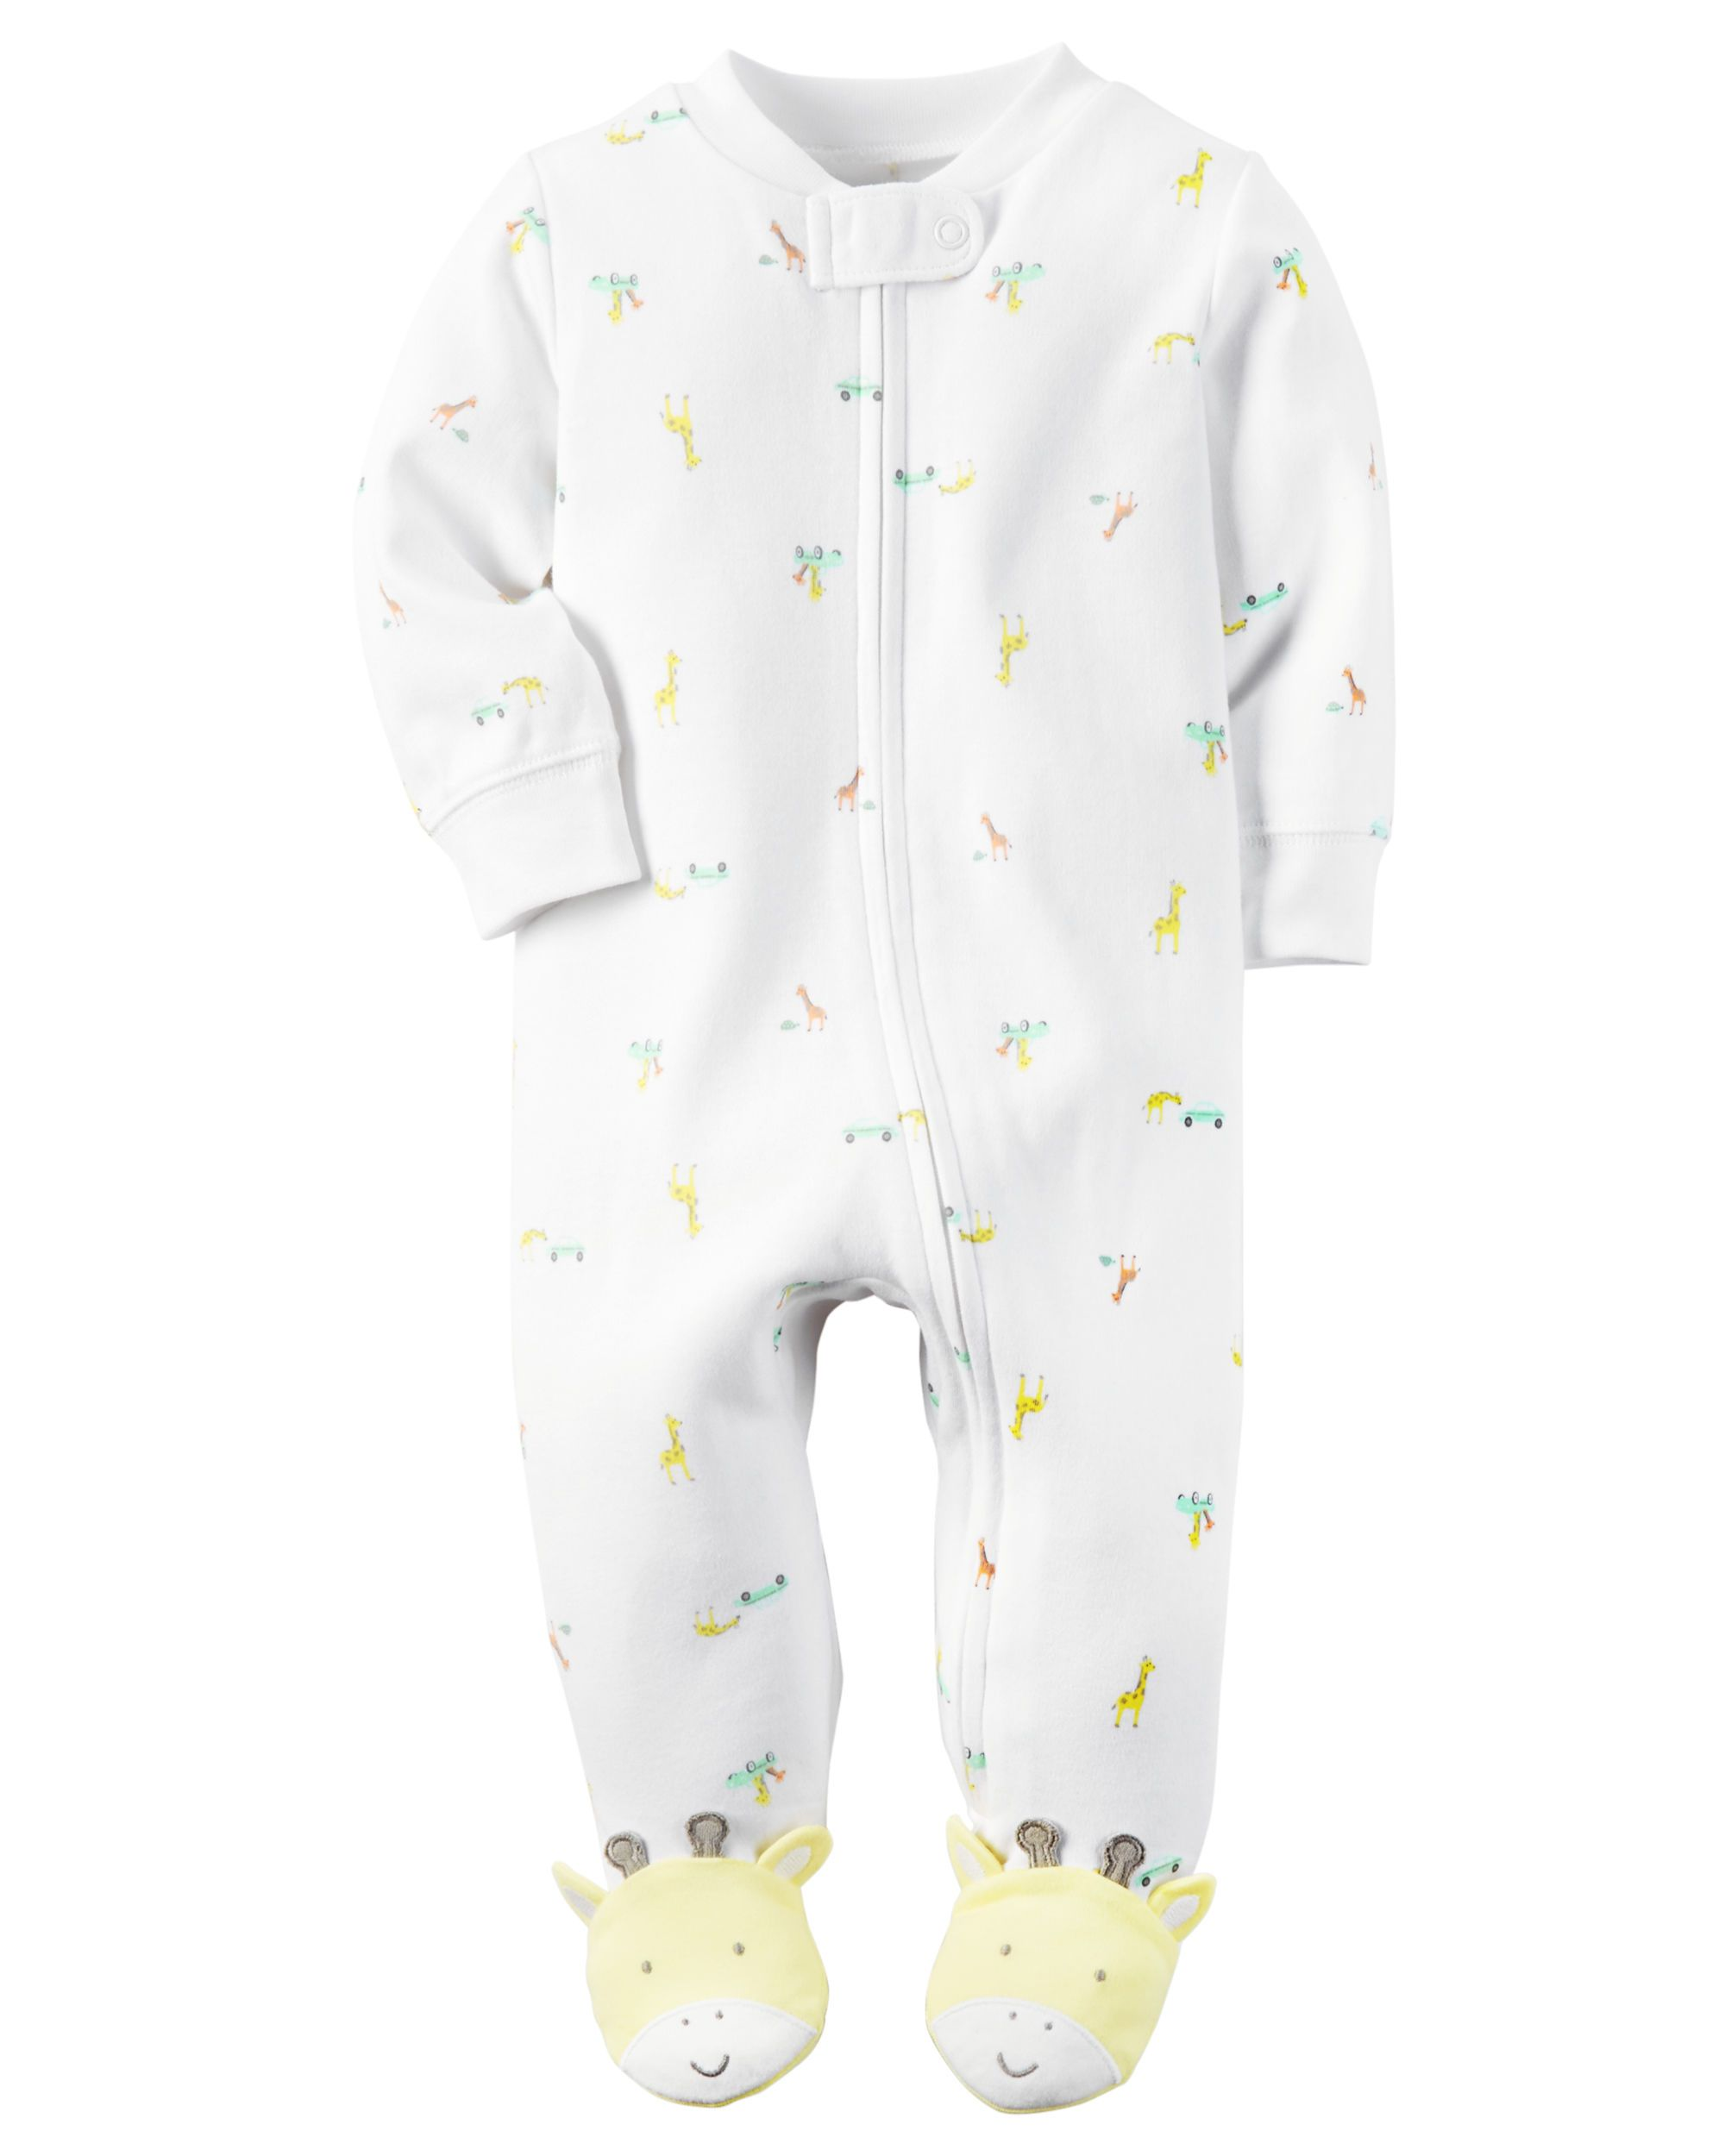 Carters Baby Girls Microfleece Snap-Up Sleep /& Play Polka Dot Dog NB